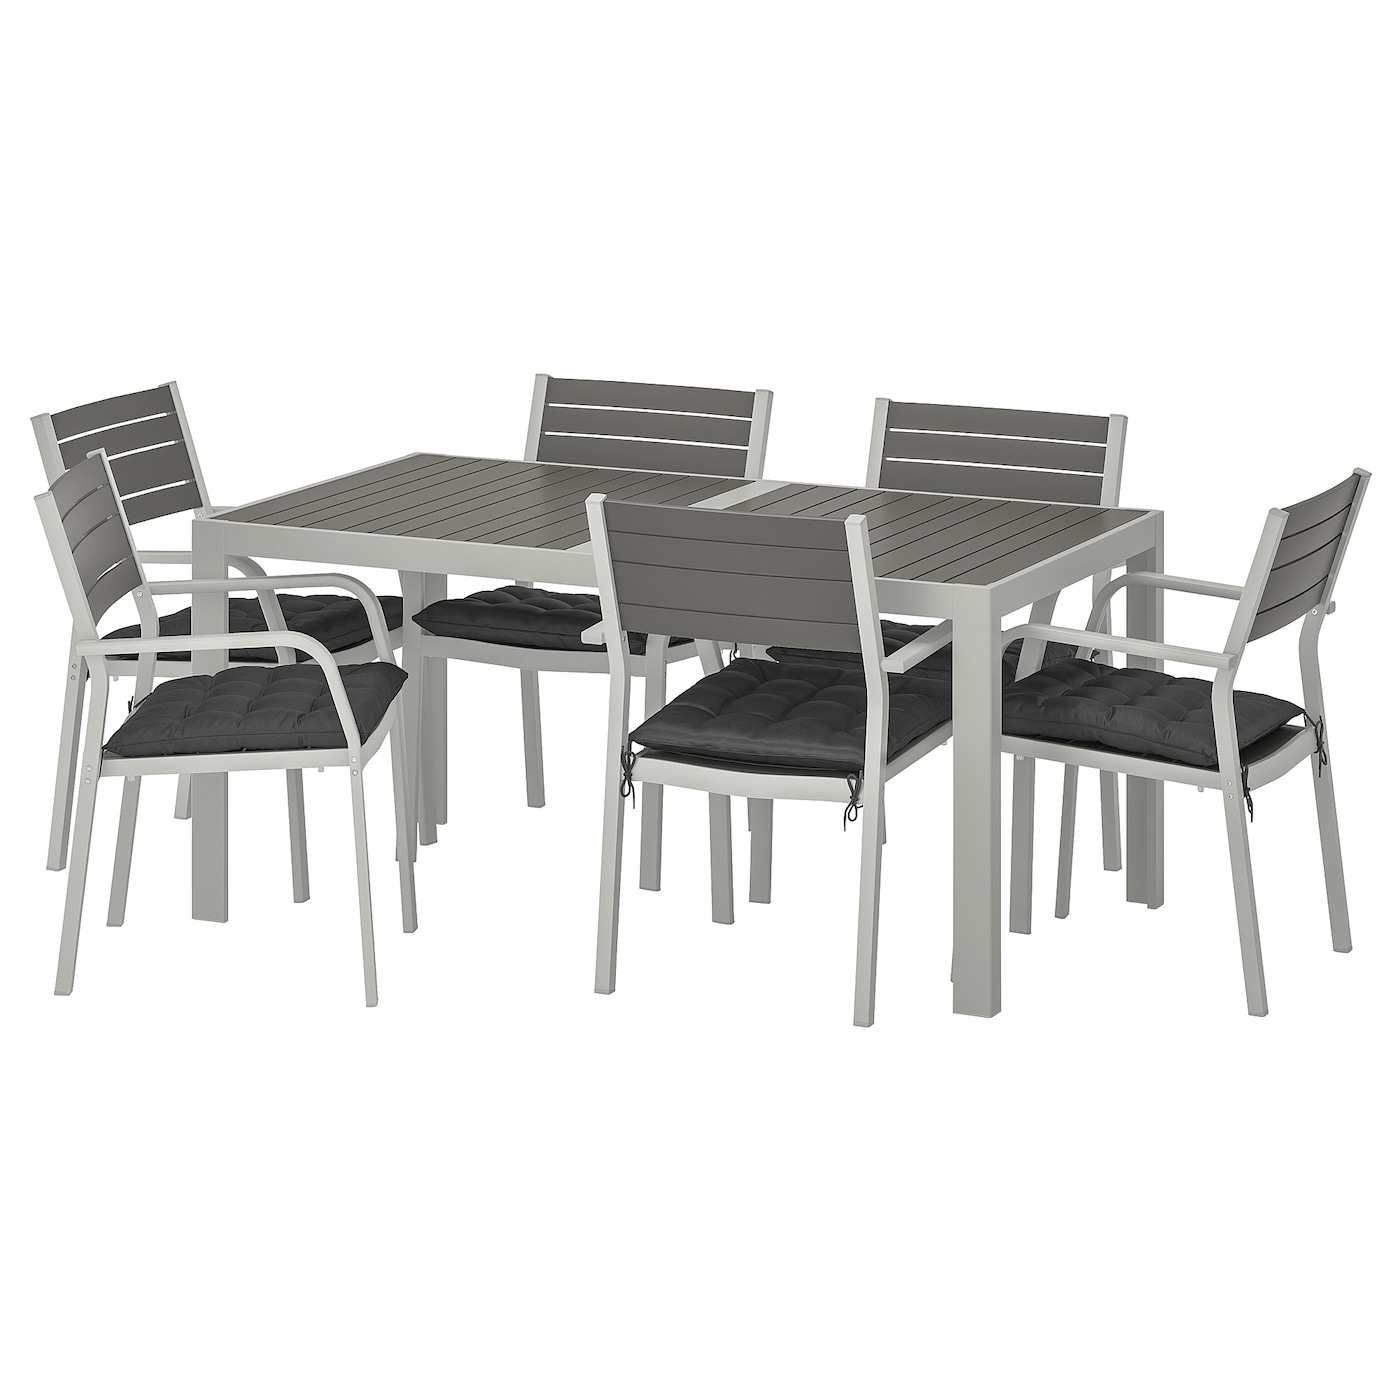 IKEA SJÄLLAND table+6 chairs w armrests, outdoor Easy to keep clean – just wipe with a damp cloth.